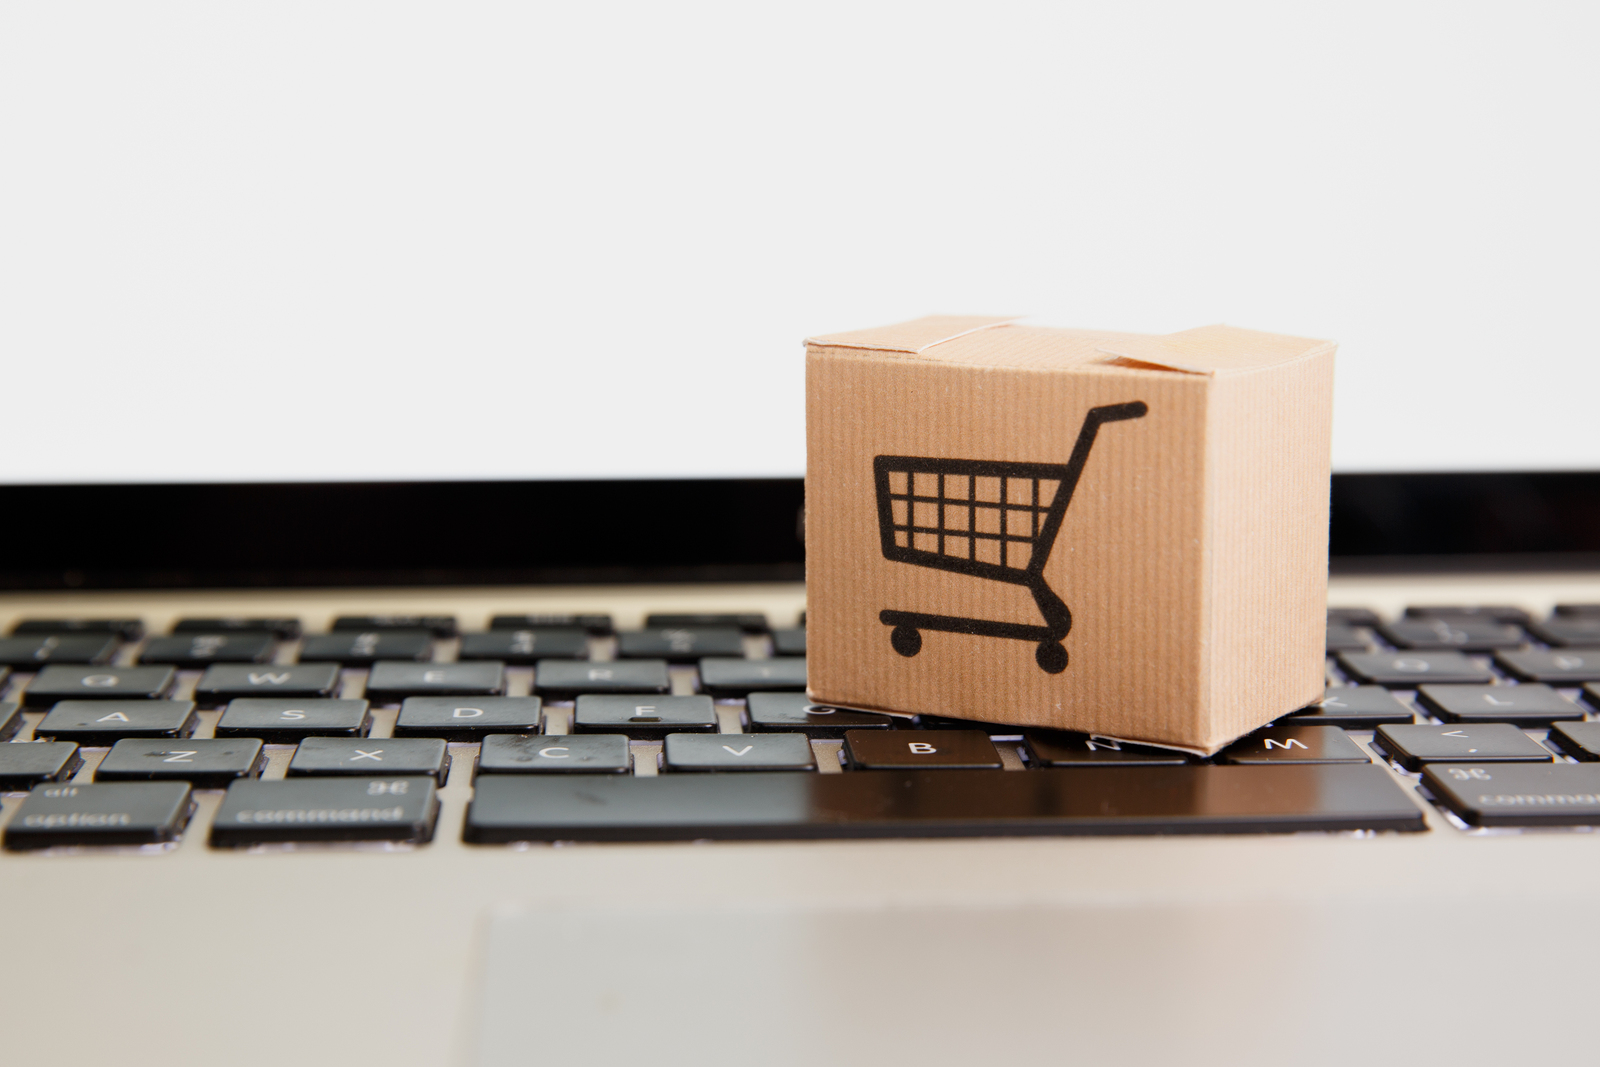 Online shopping . ecommerce and delivery service concept : Paper cartons with a cart or trolley logo on a laptop keyboard, depicts customers order things from retailer sites